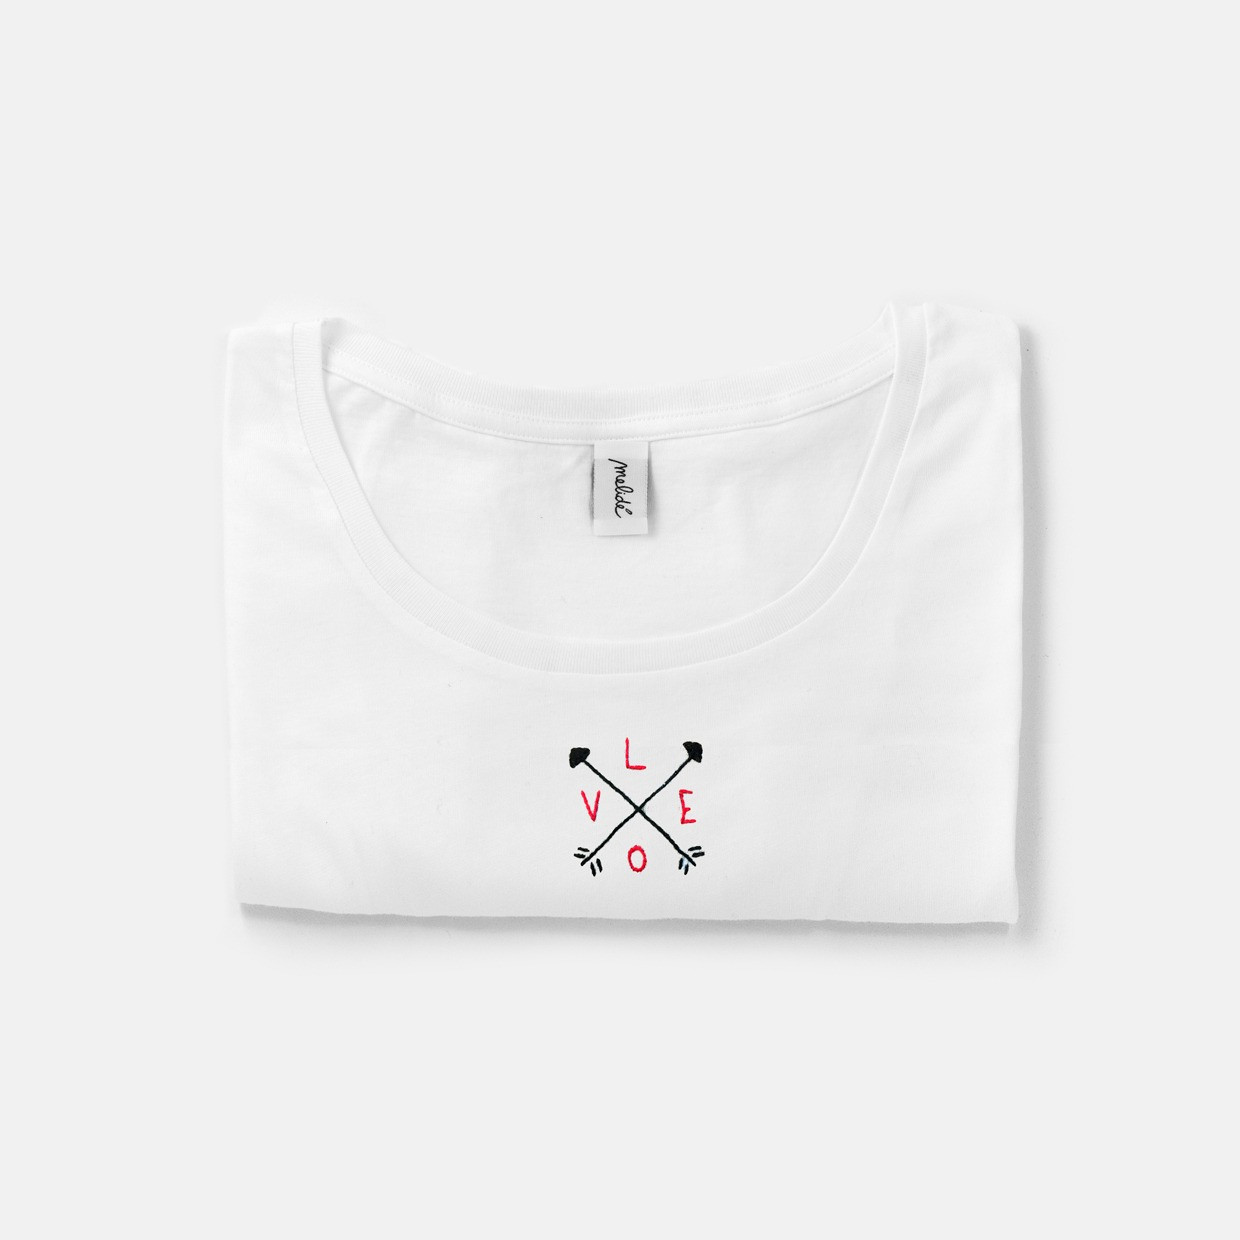 The UNIVERSAL LOVE wide neck tee